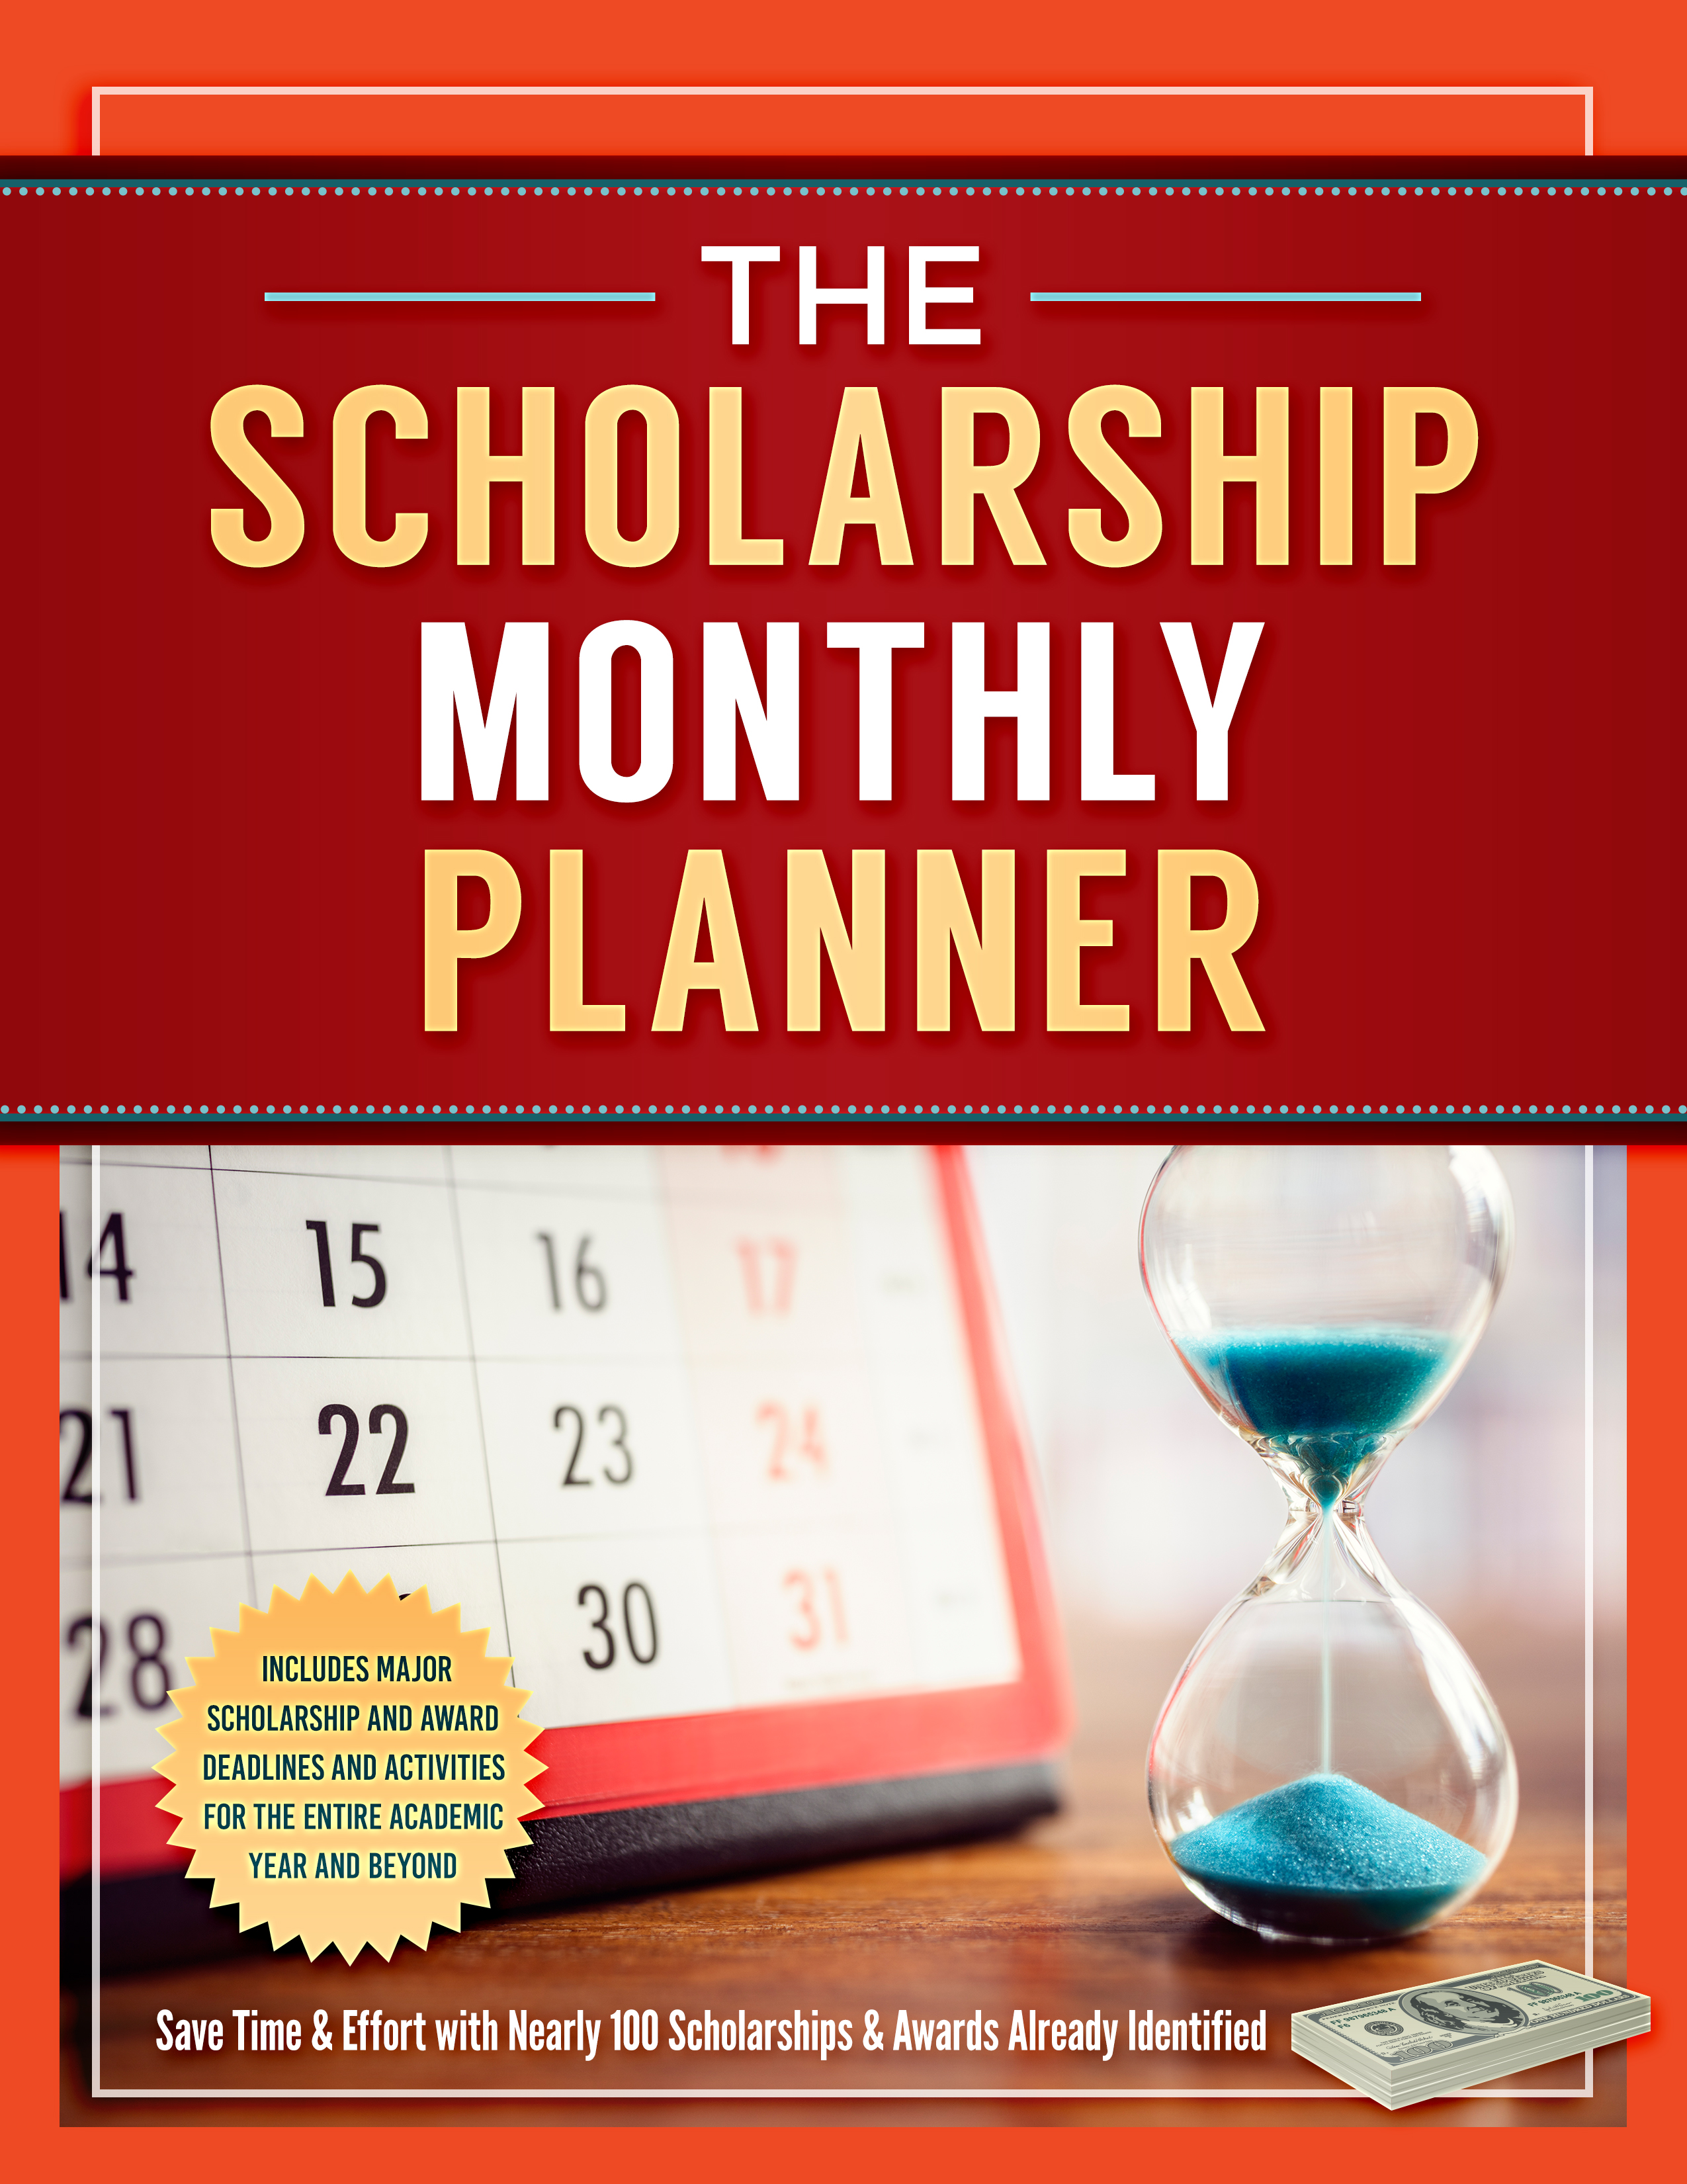 The Scholarship Monthly Planner helps you find scholarships